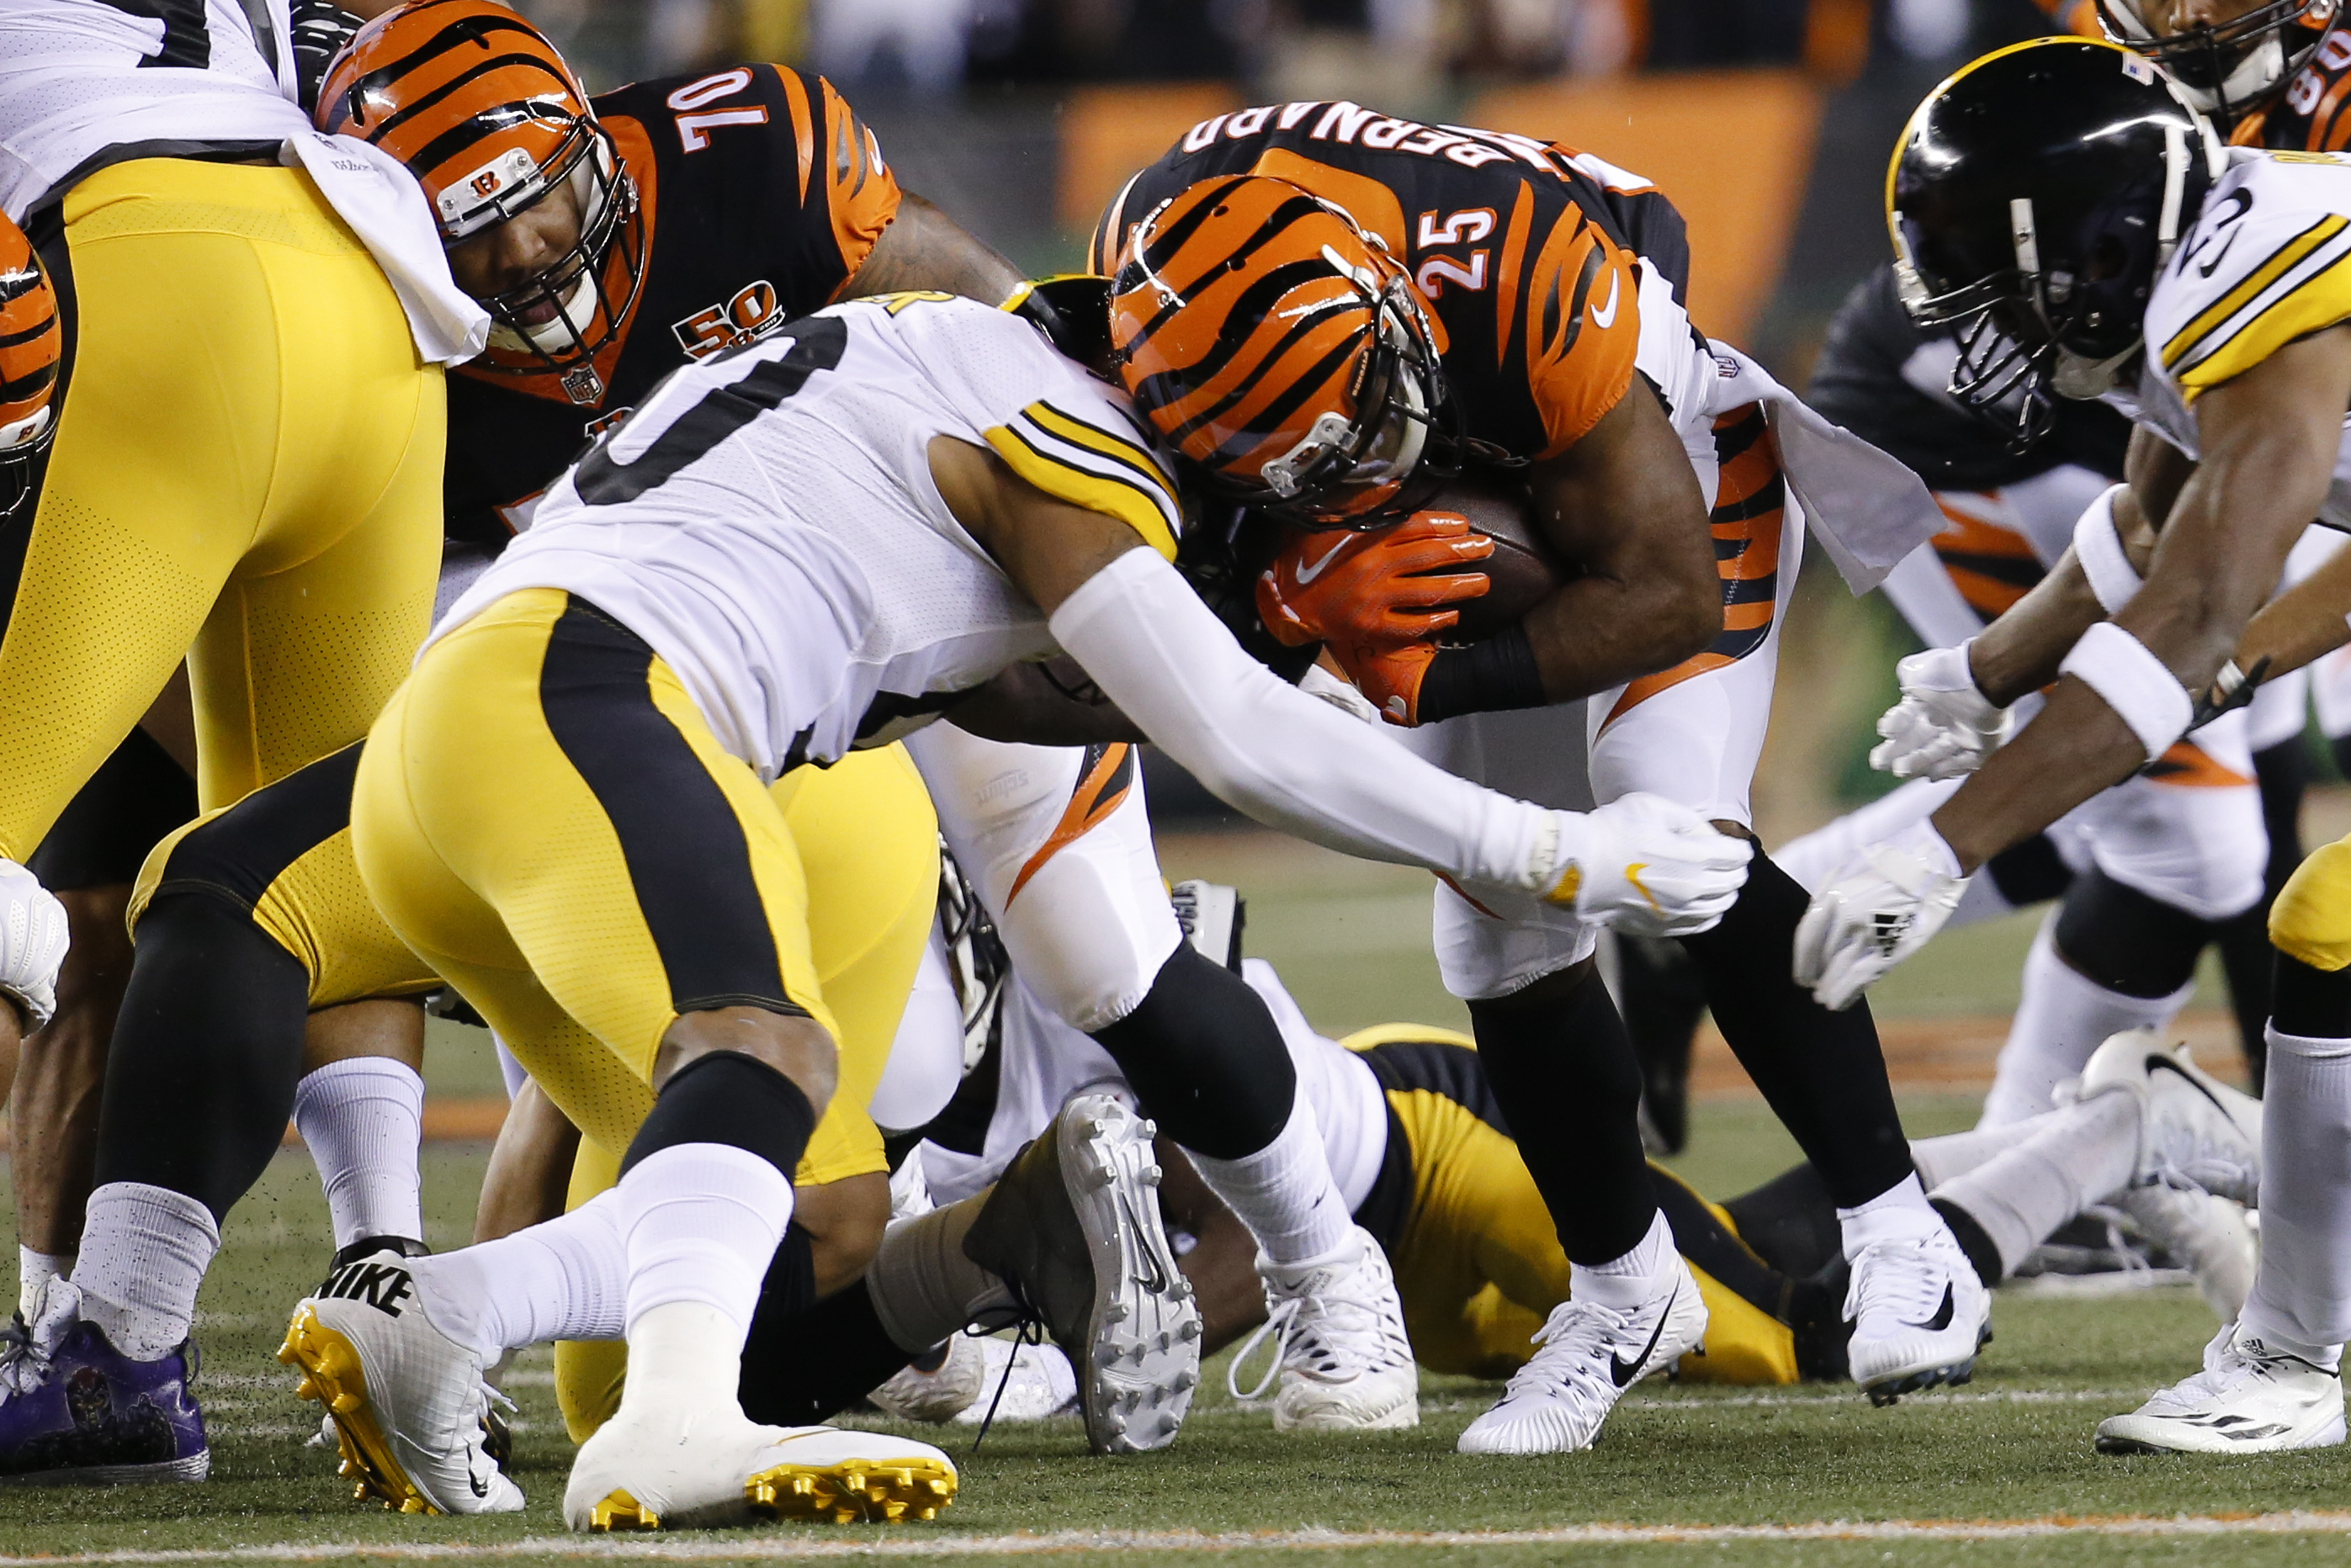 Pittsburgh Steelers inside linebacker Ryan Shazier, center left, tackles Cincinnati Bengals running back Giovani Bernard (25) in the first half of an NFL football game, Monday, Dec. 4, 2017, in Cincinnati. (AP Photo/Frank Victores)